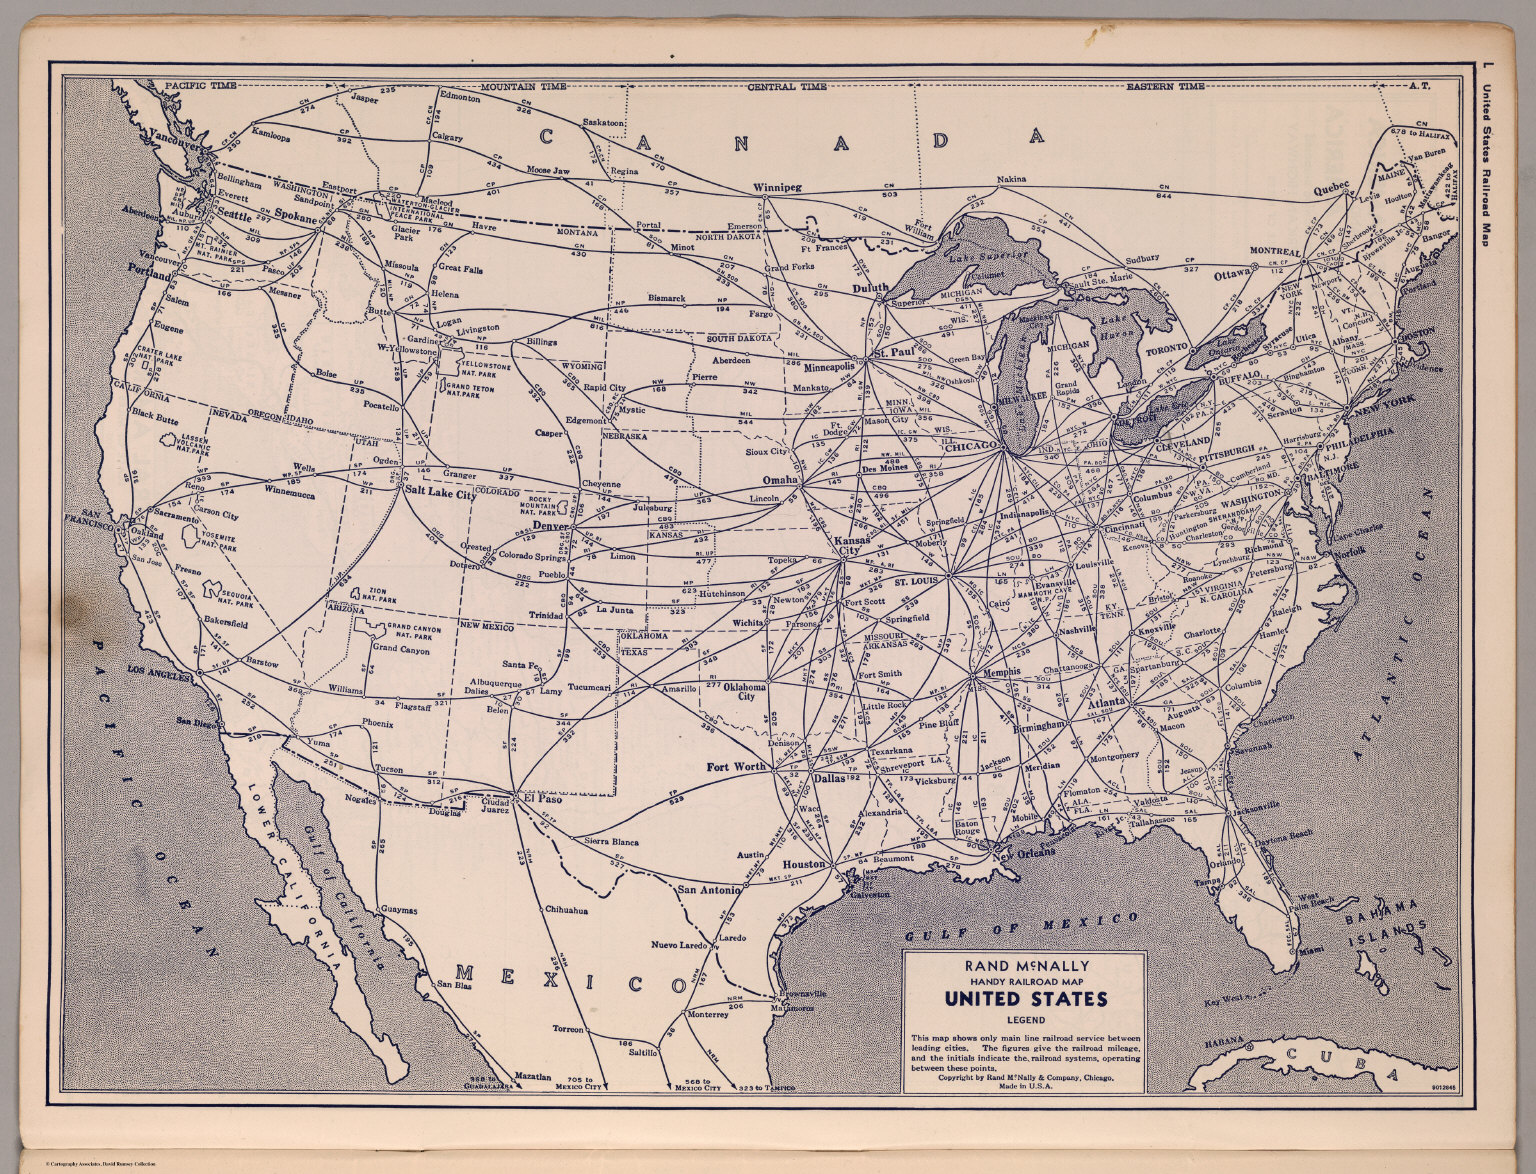 1940 United States Highway Map